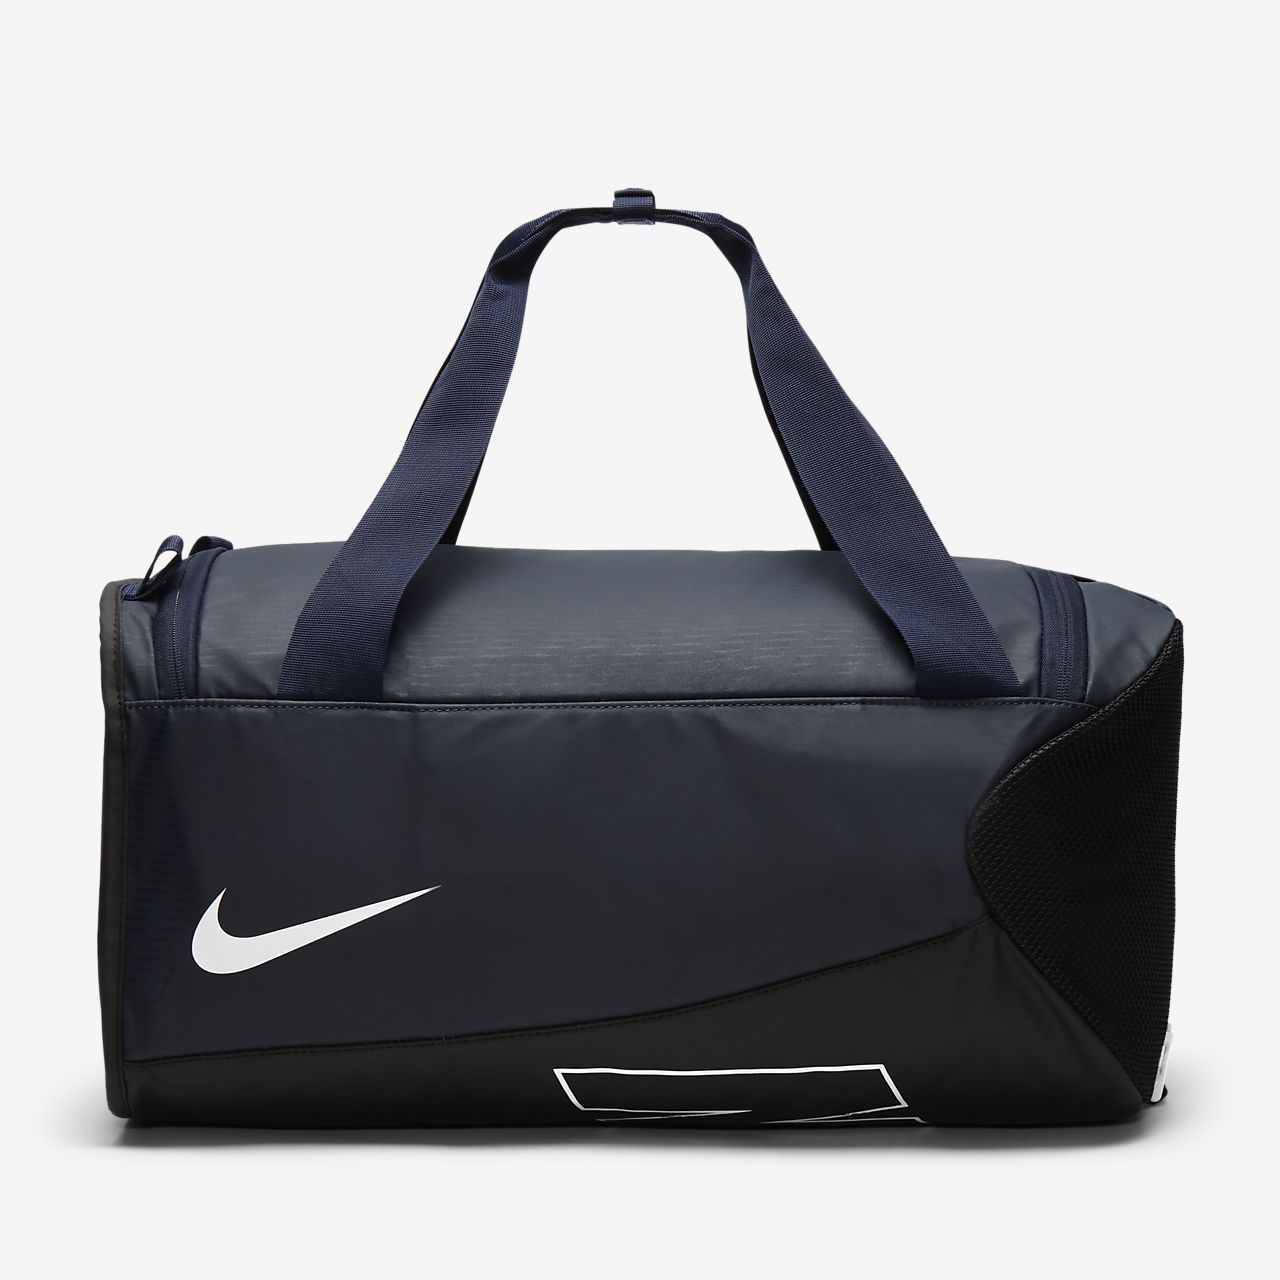 sac de sport nike alpha adapt crossbody pour enfant plus. Black Bedroom Furniture Sets. Home Design Ideas